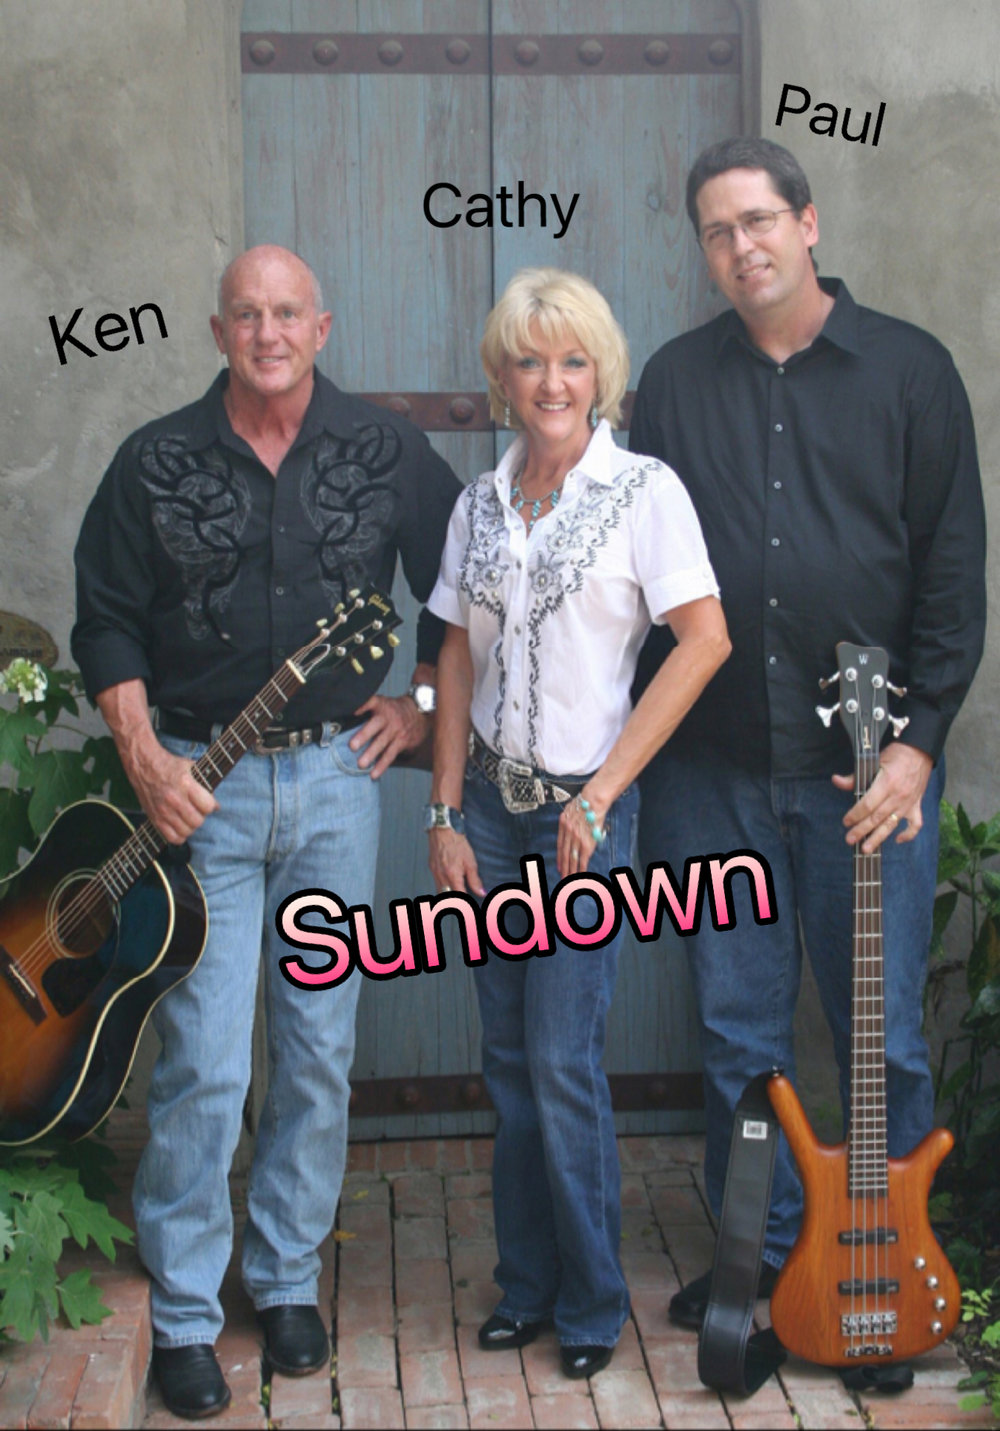 Our Band, Sundown at Louisiana Street Grill Friday January 6th....7:30 till 10:30